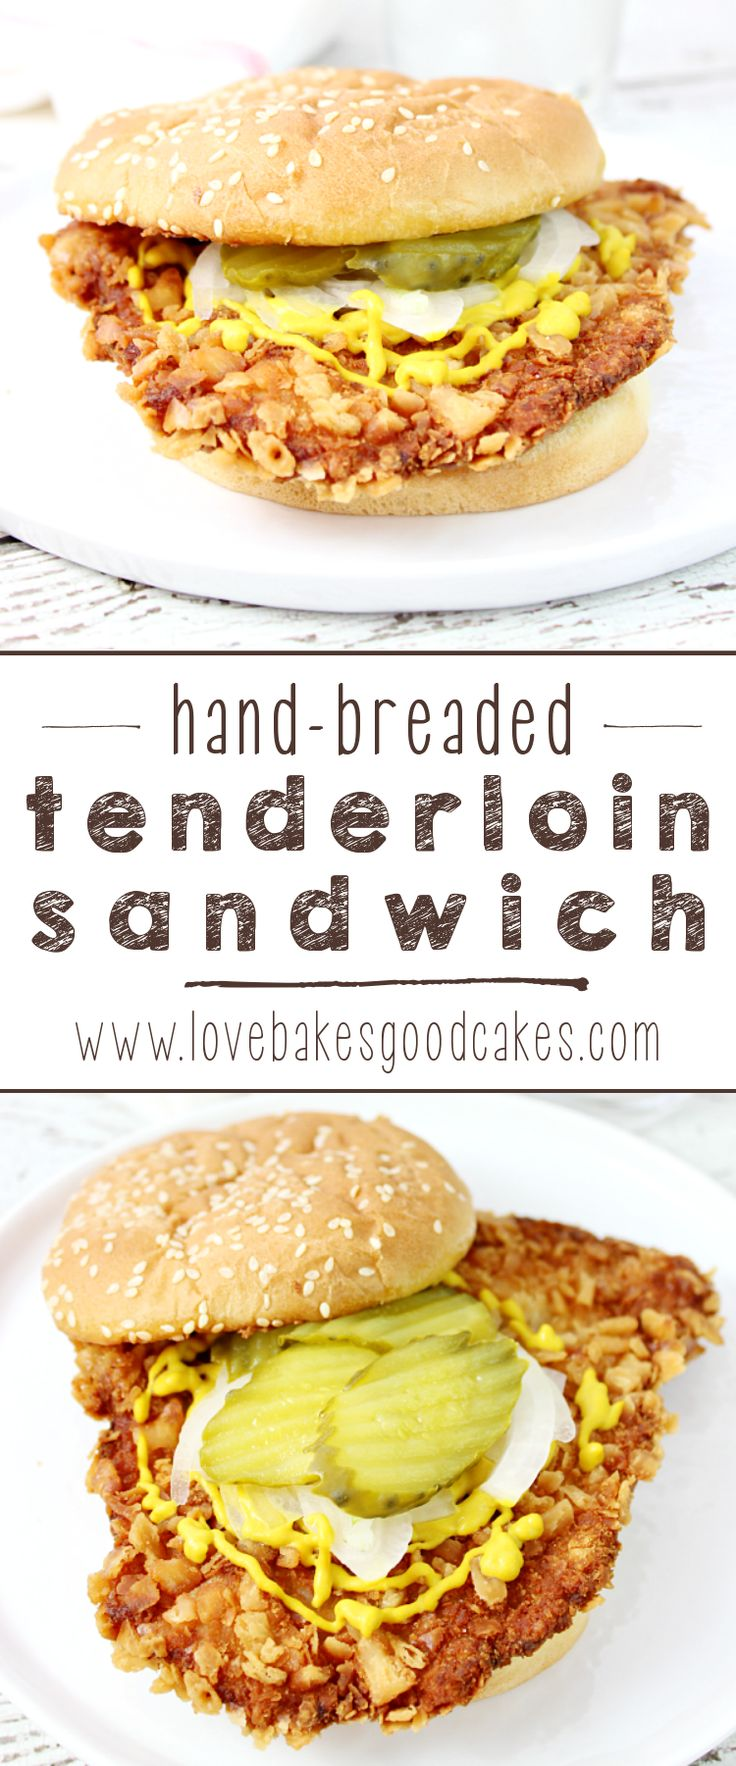 A Midwest favorite! This Hand-Breaded Tenderloin Sandwich is fried until golden brown, then topped the traditional way with mustard, pickles and onions! You have to try this sandwich!!